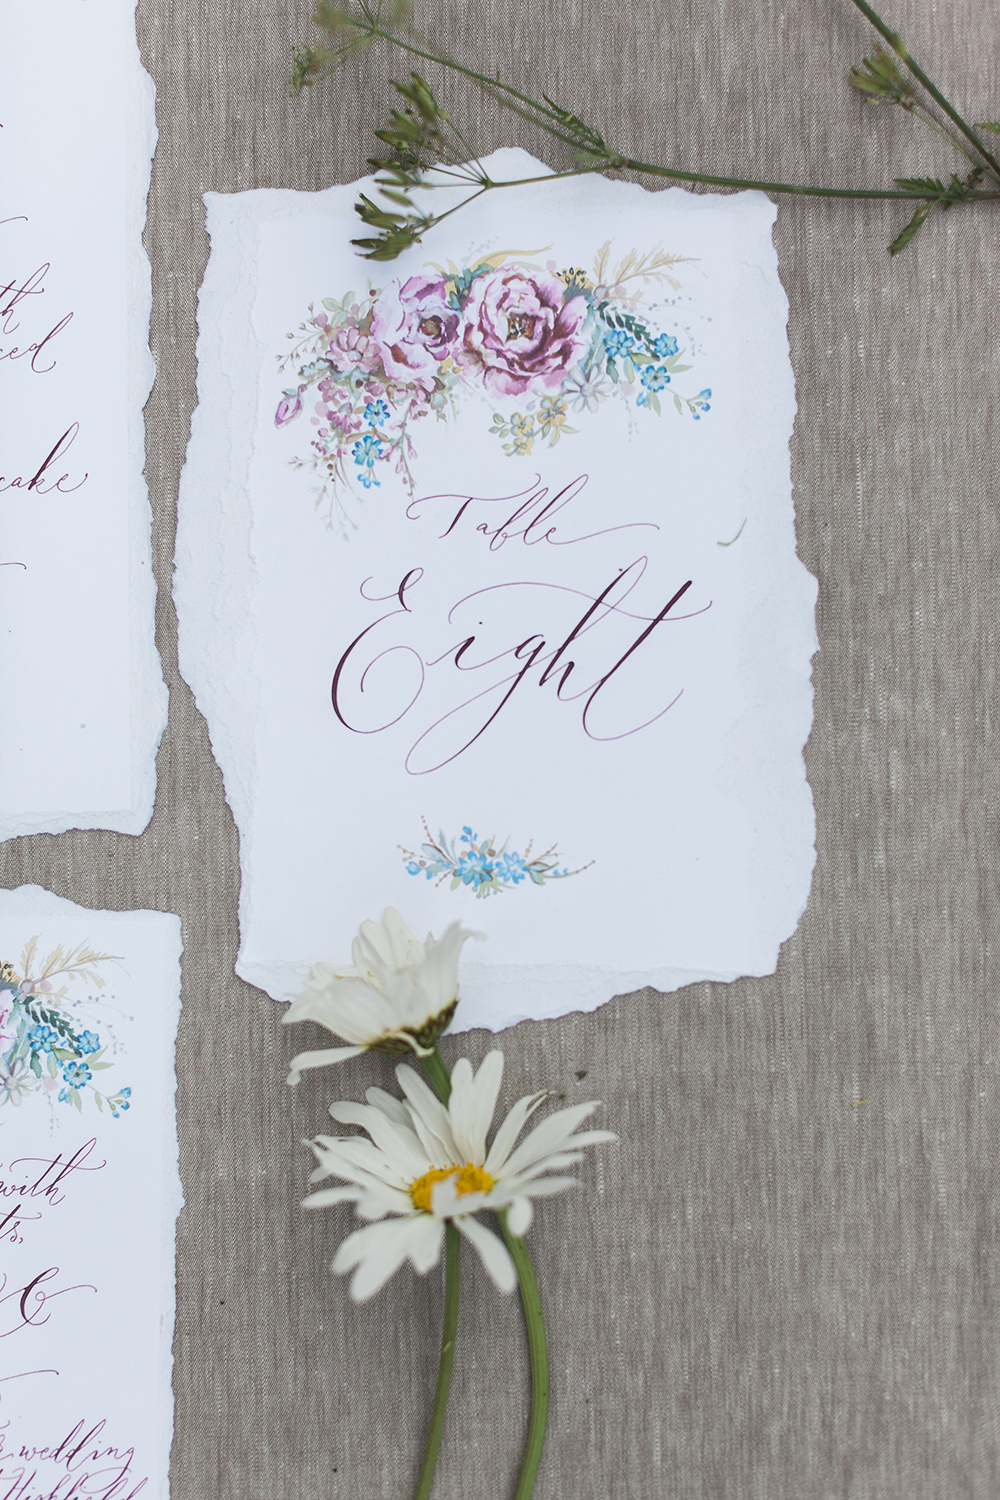 Summer wedding stationery with floral illustrations